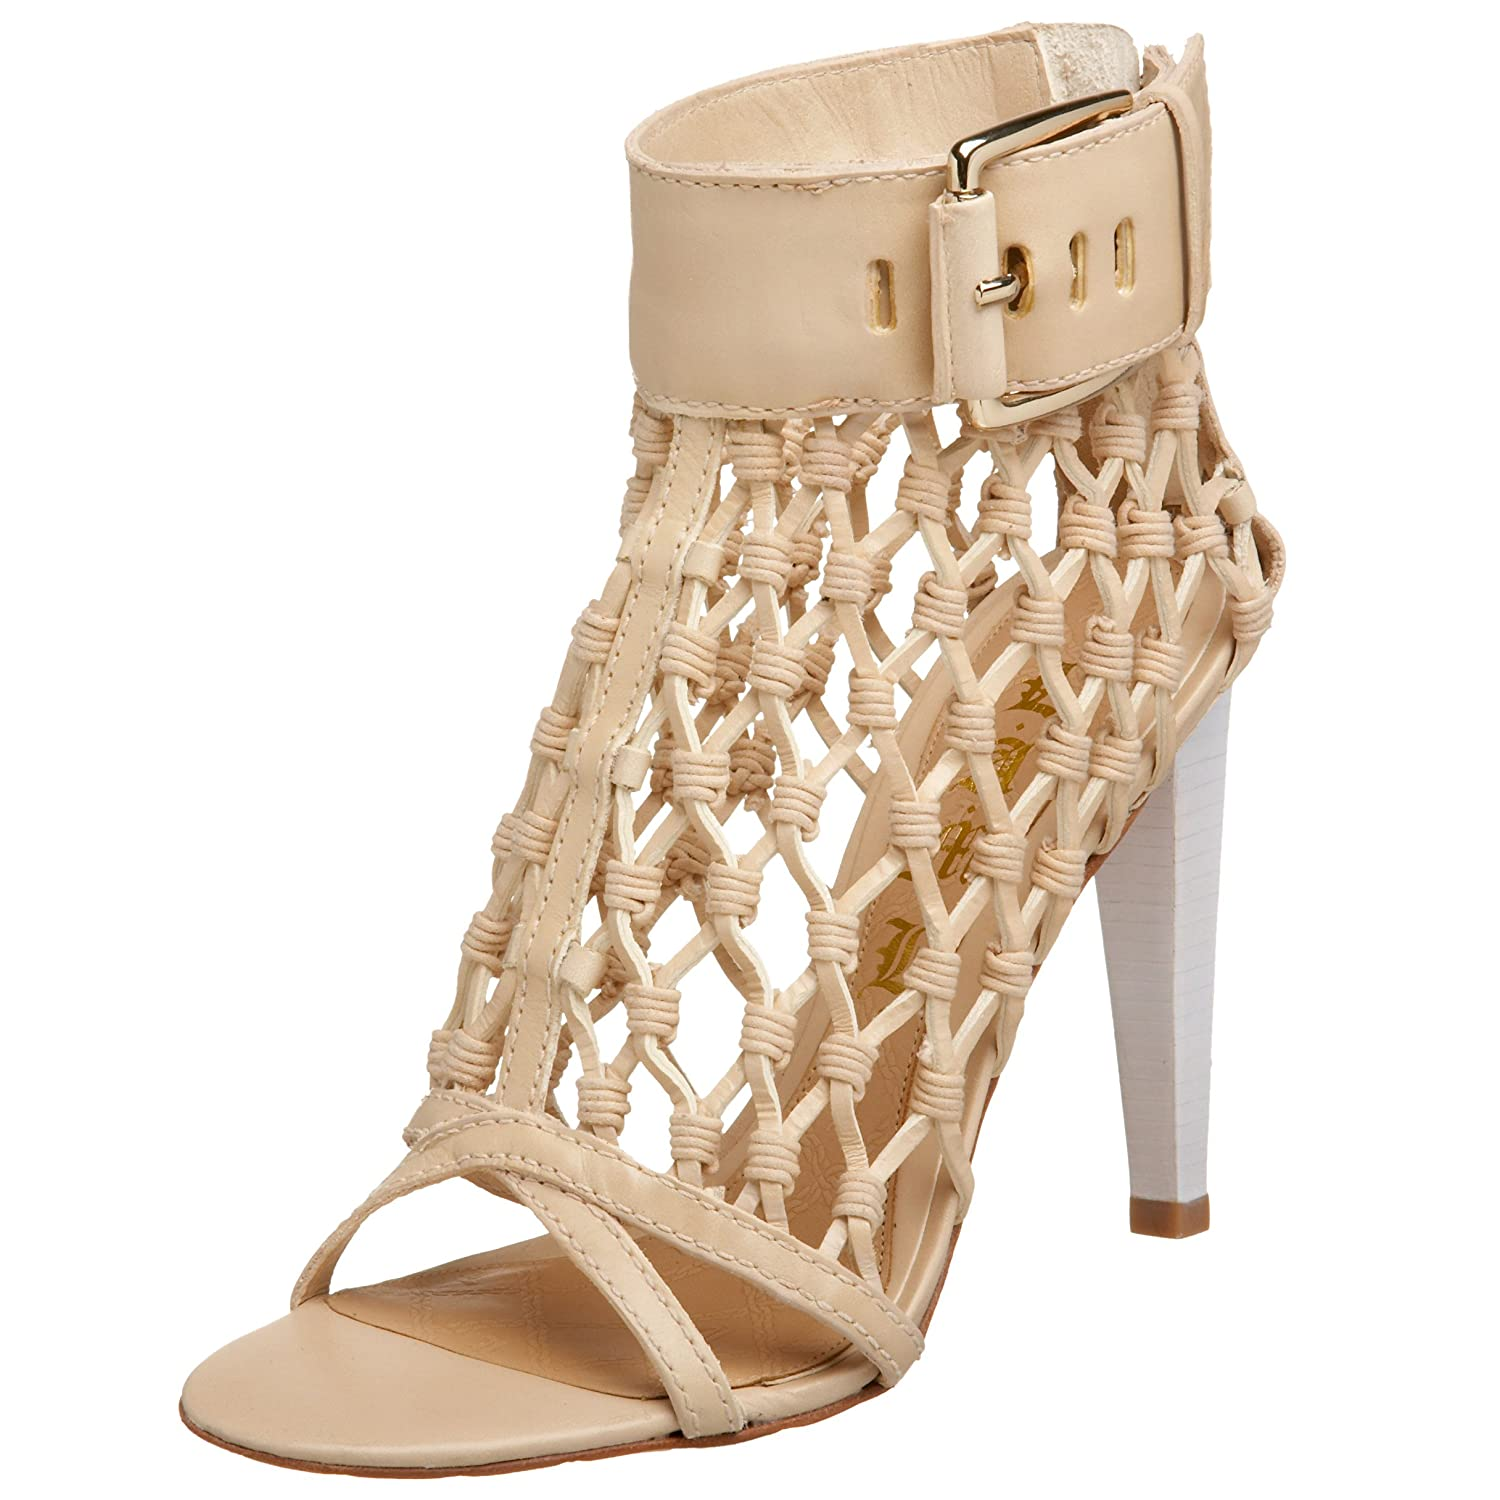 L.A.M.B. Women's Faith Bootie - Free Overnight Shipping & Return Shipping: Endless.com :  sandal lamb caged